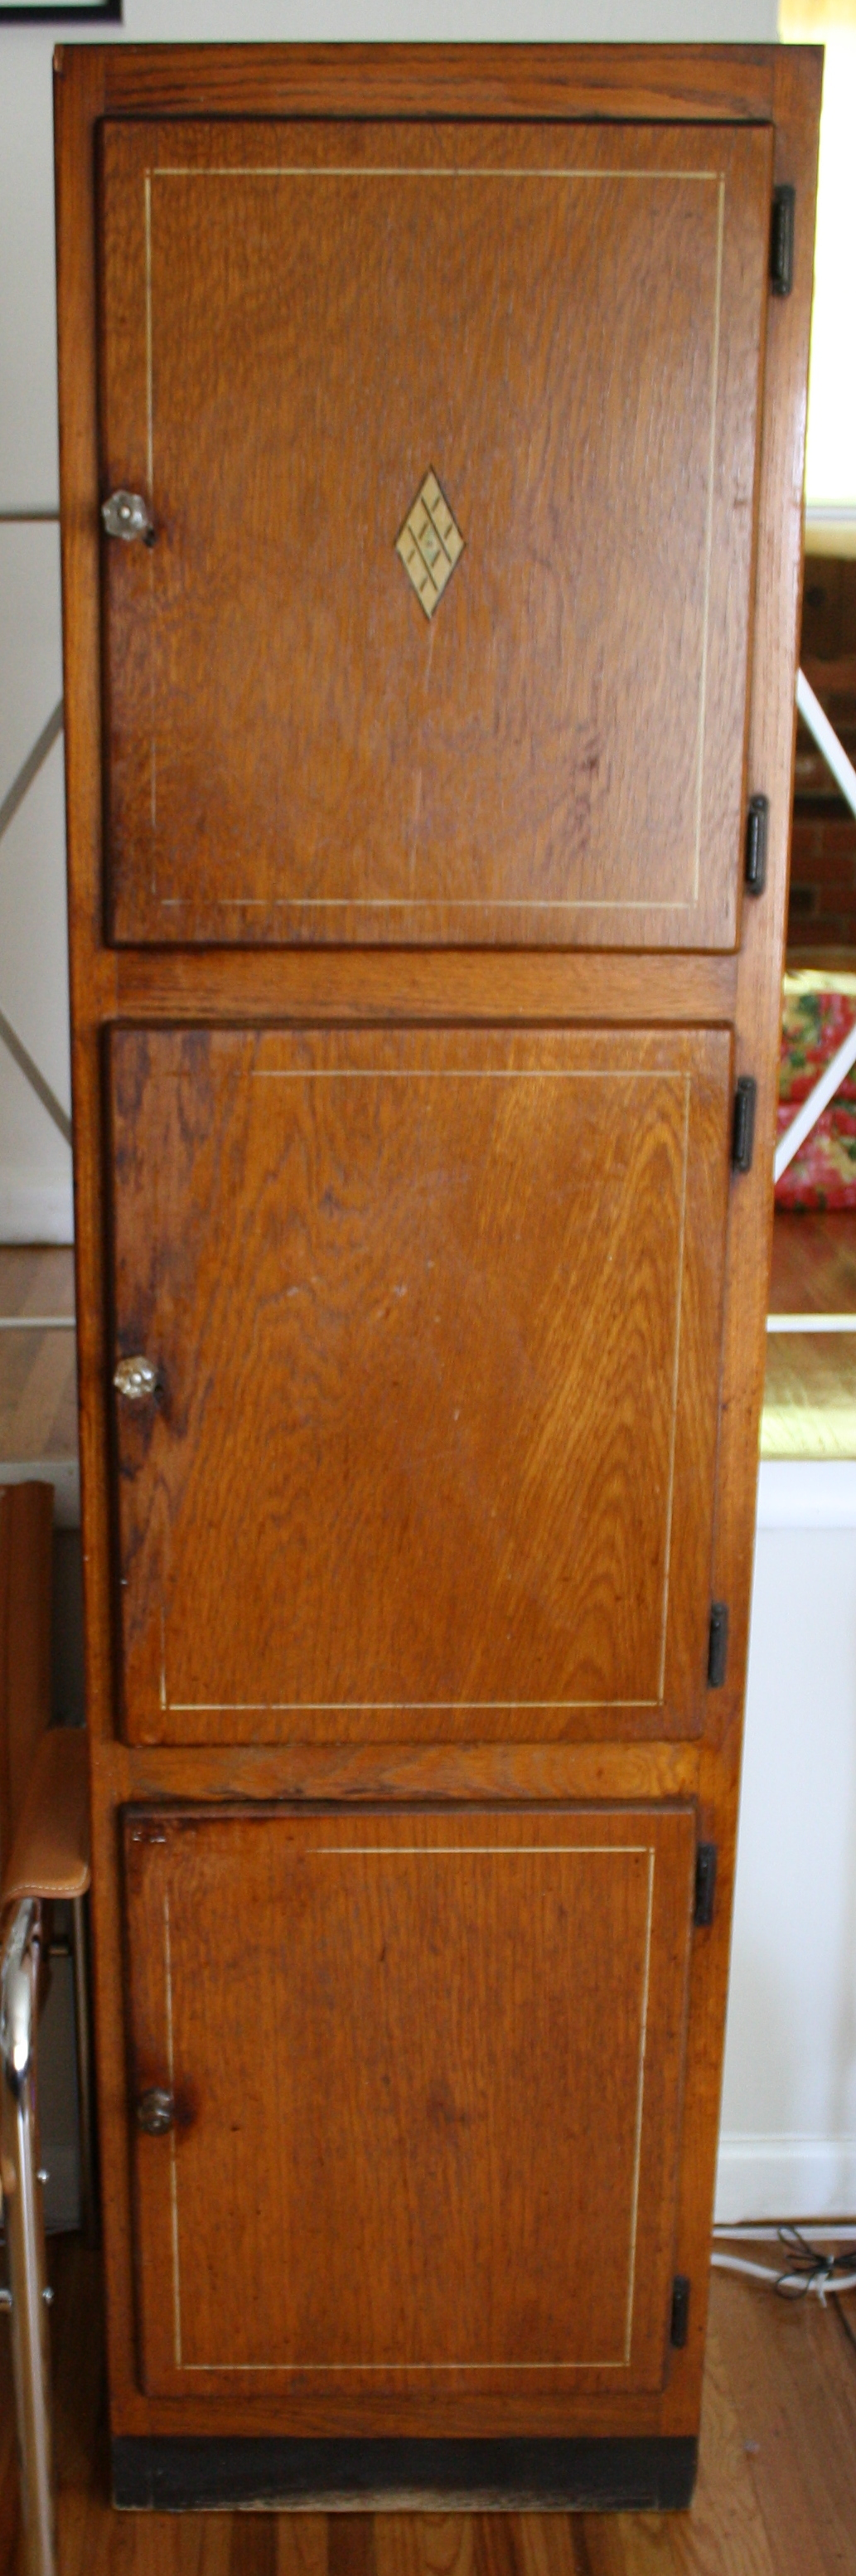 Retro Tall Wood Cabinet with Cut Glass Knobs  Picked Vintage